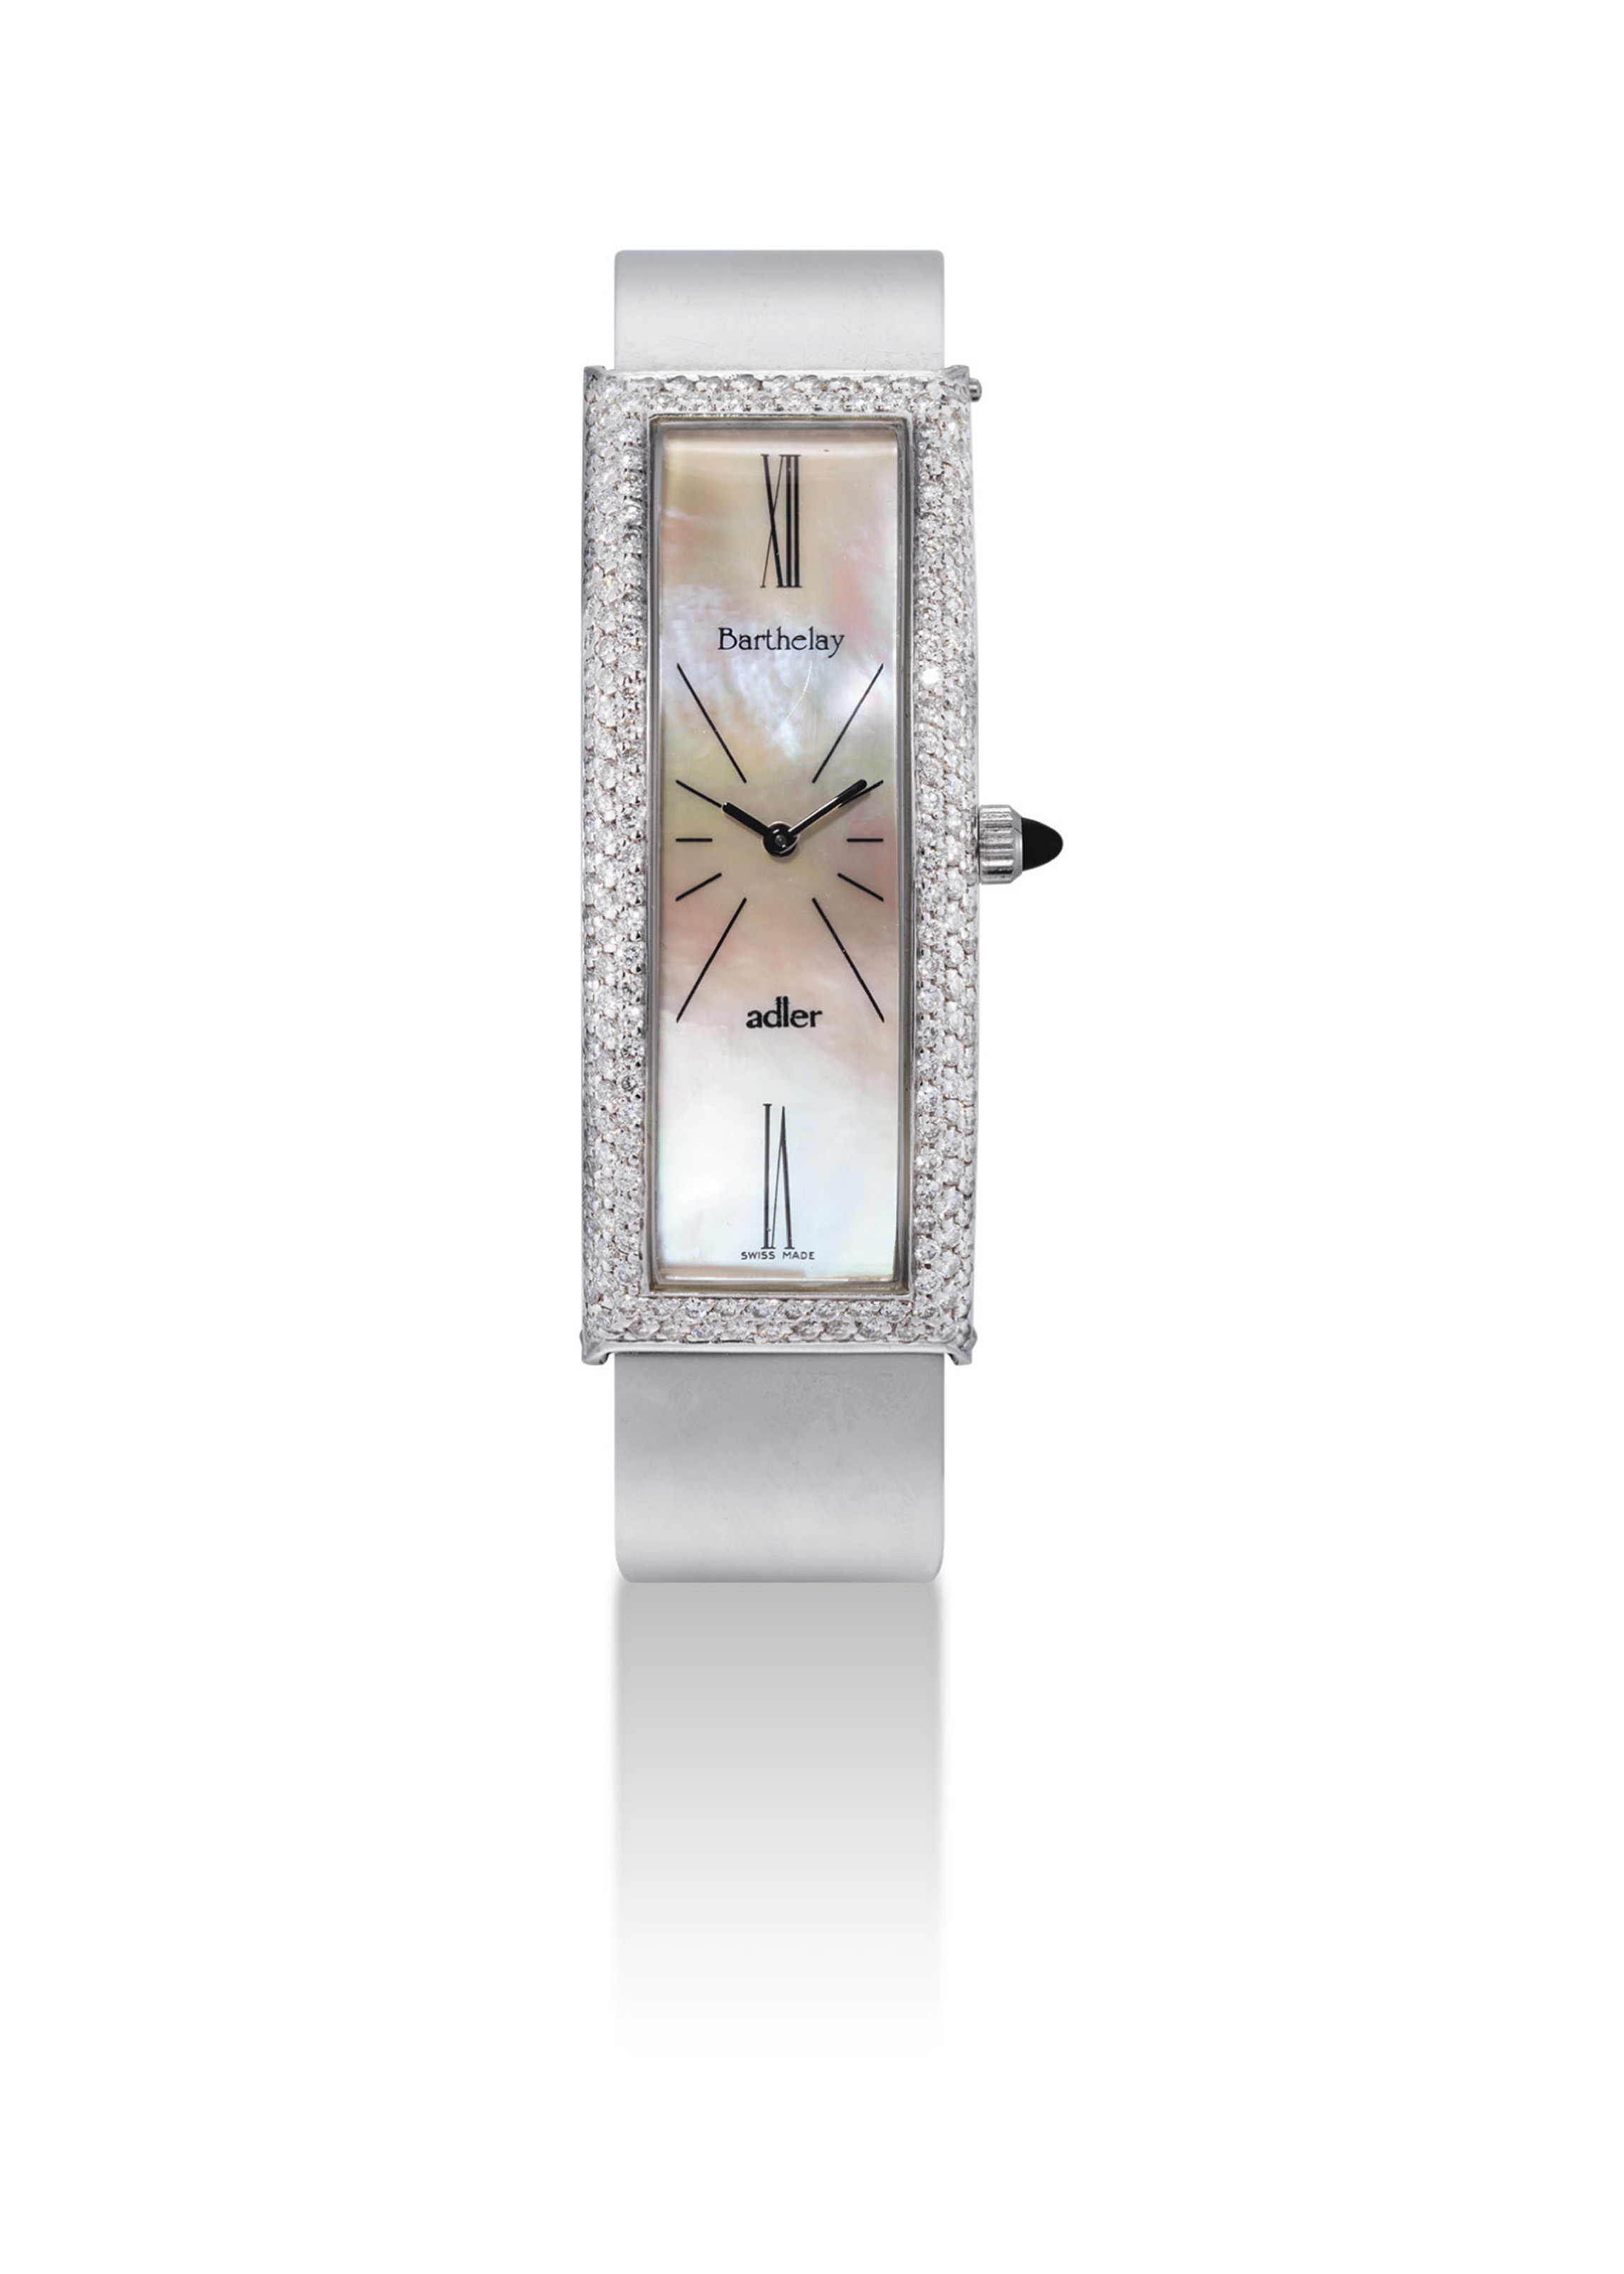 BARTHELAY. A LADY'S 18K WHITE GOLD AND DIAMOND-SET RECTANGULAR BANGLE WATCH WITH MOTHER-OF-PEARL DIAL